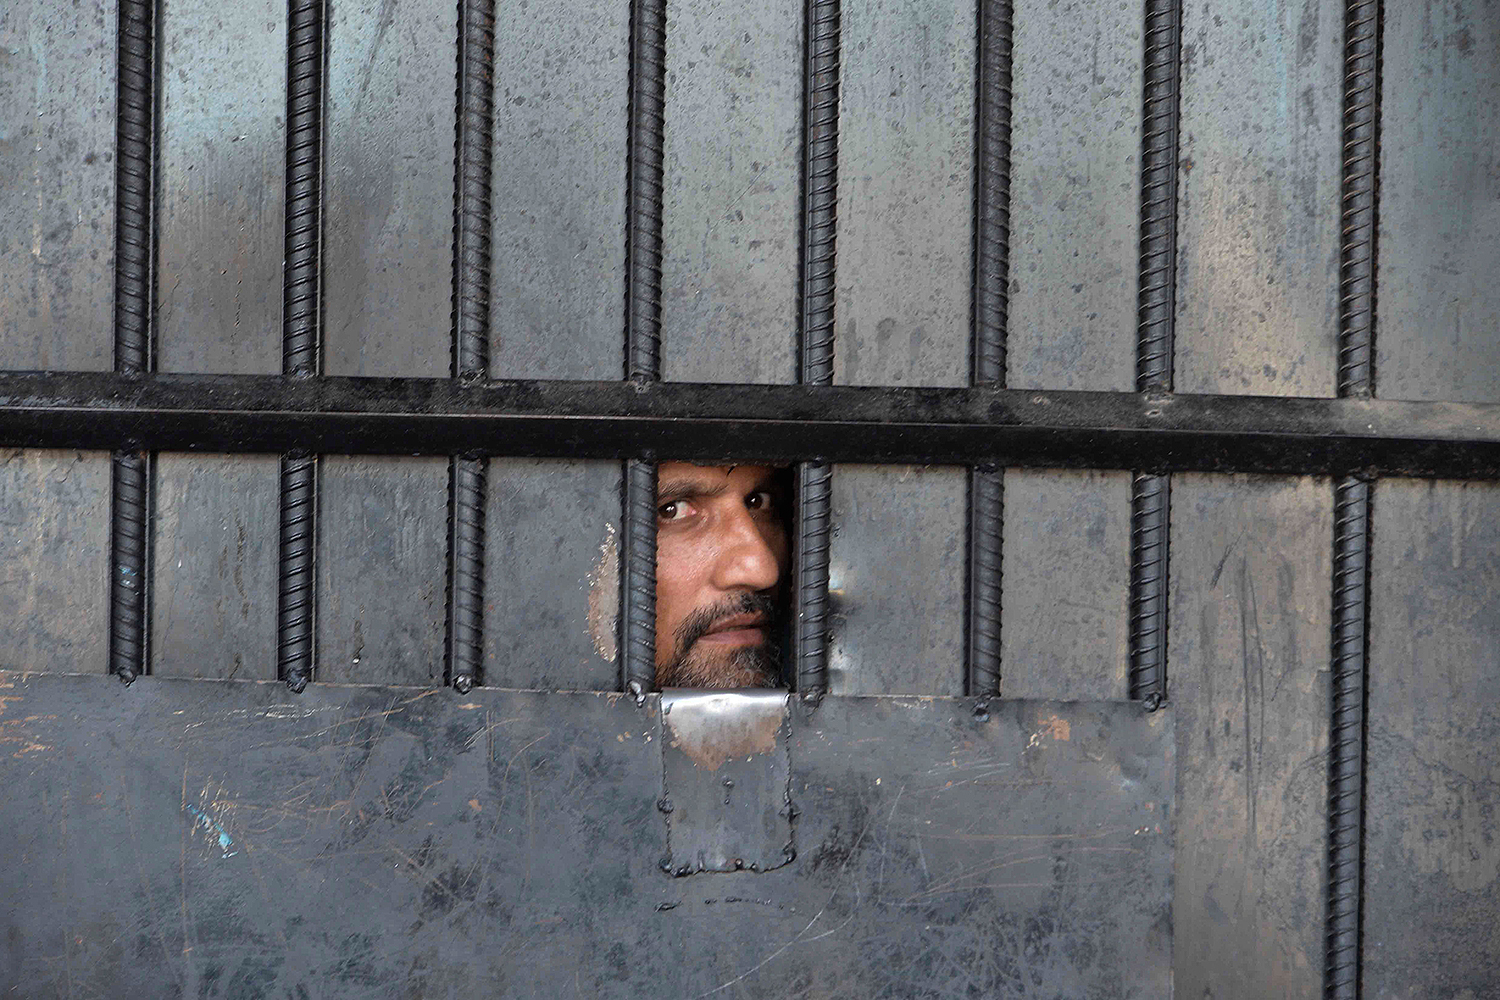 An inmate watches from behind a gate after a raid at the prison in Jalalabad, Afghanistan, on Aug. 3. The attack at the prison by gunmen, which left 29 people dead and officials looking for hundreds of escaped prisoners, was claimed by the Islamic State. NOORULLAH SHIRZADA/AFP via Getty Images